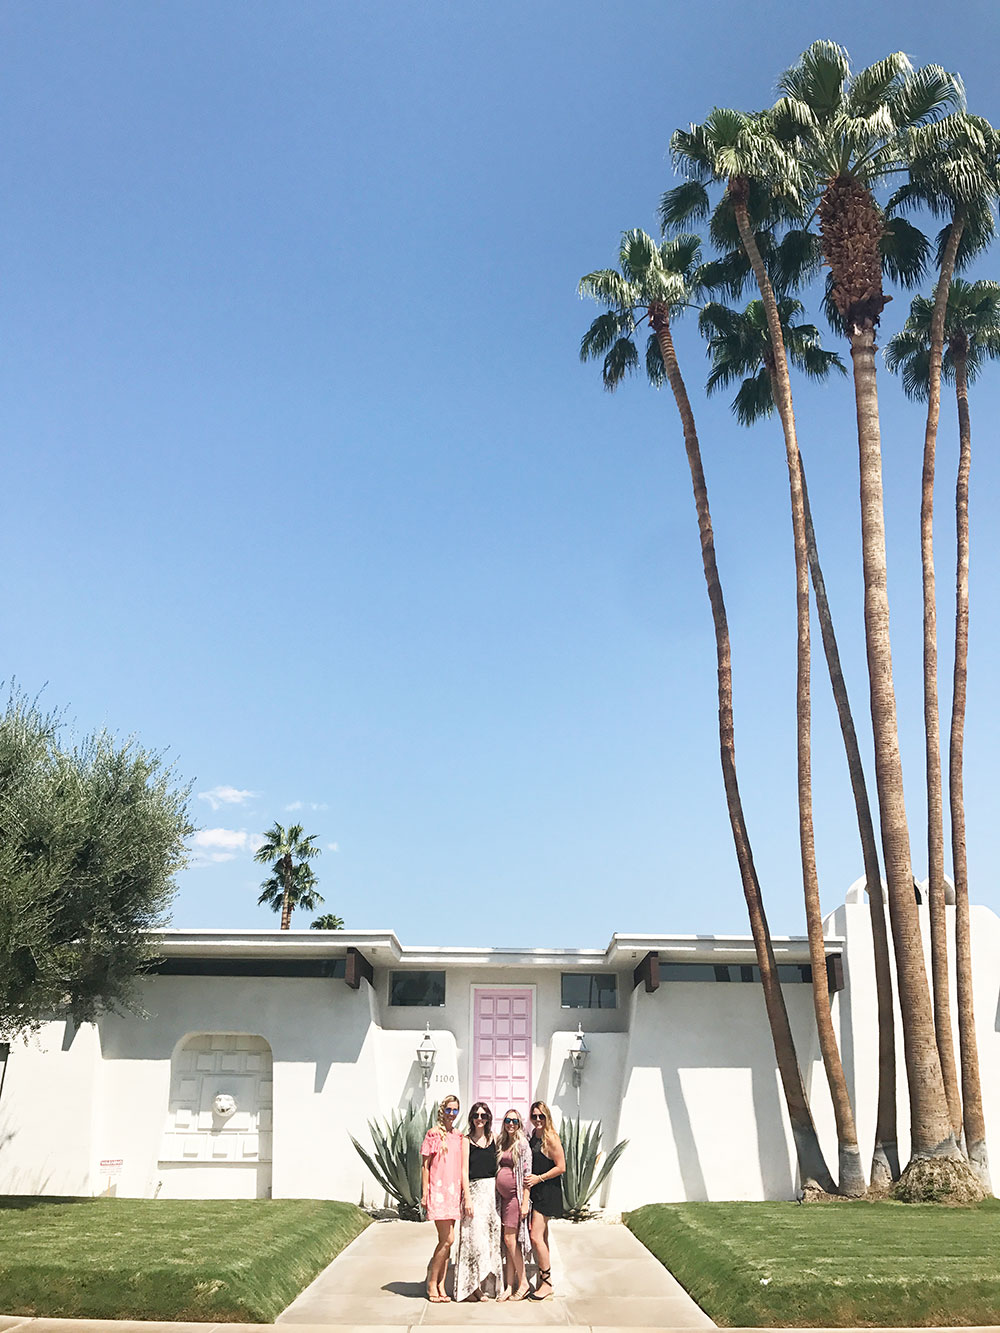 #thatpinkdoor is a must see in palm springs! | thelovedesignedlife.com